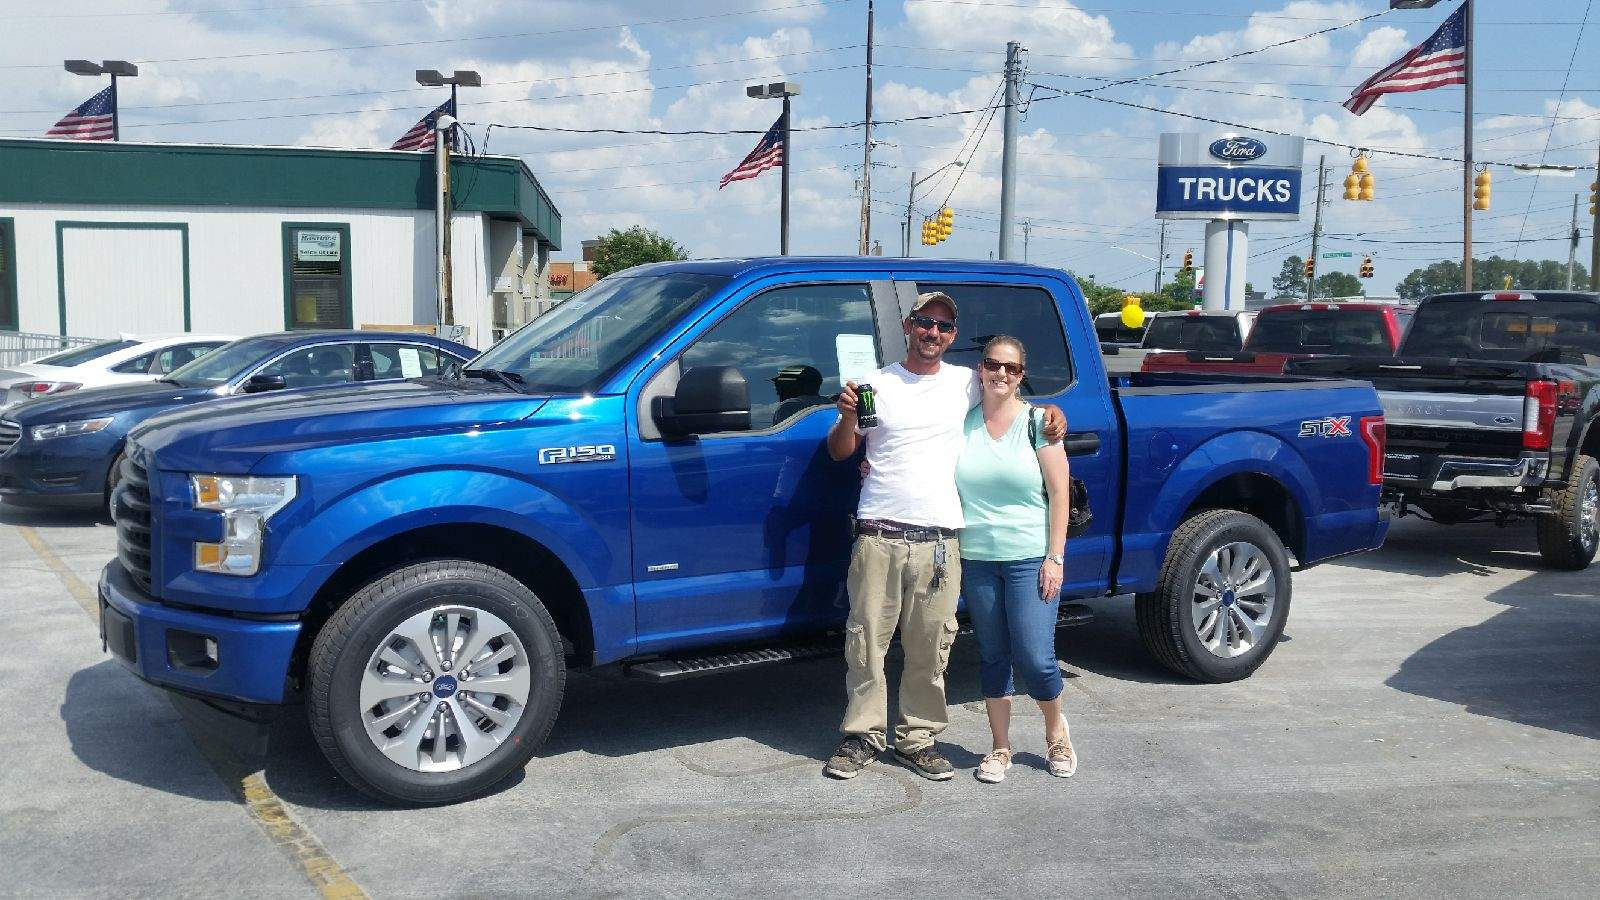 Hastings Ford Greenville Nc >> Happy Hastings Ford Owners | Hastings Ford Inc